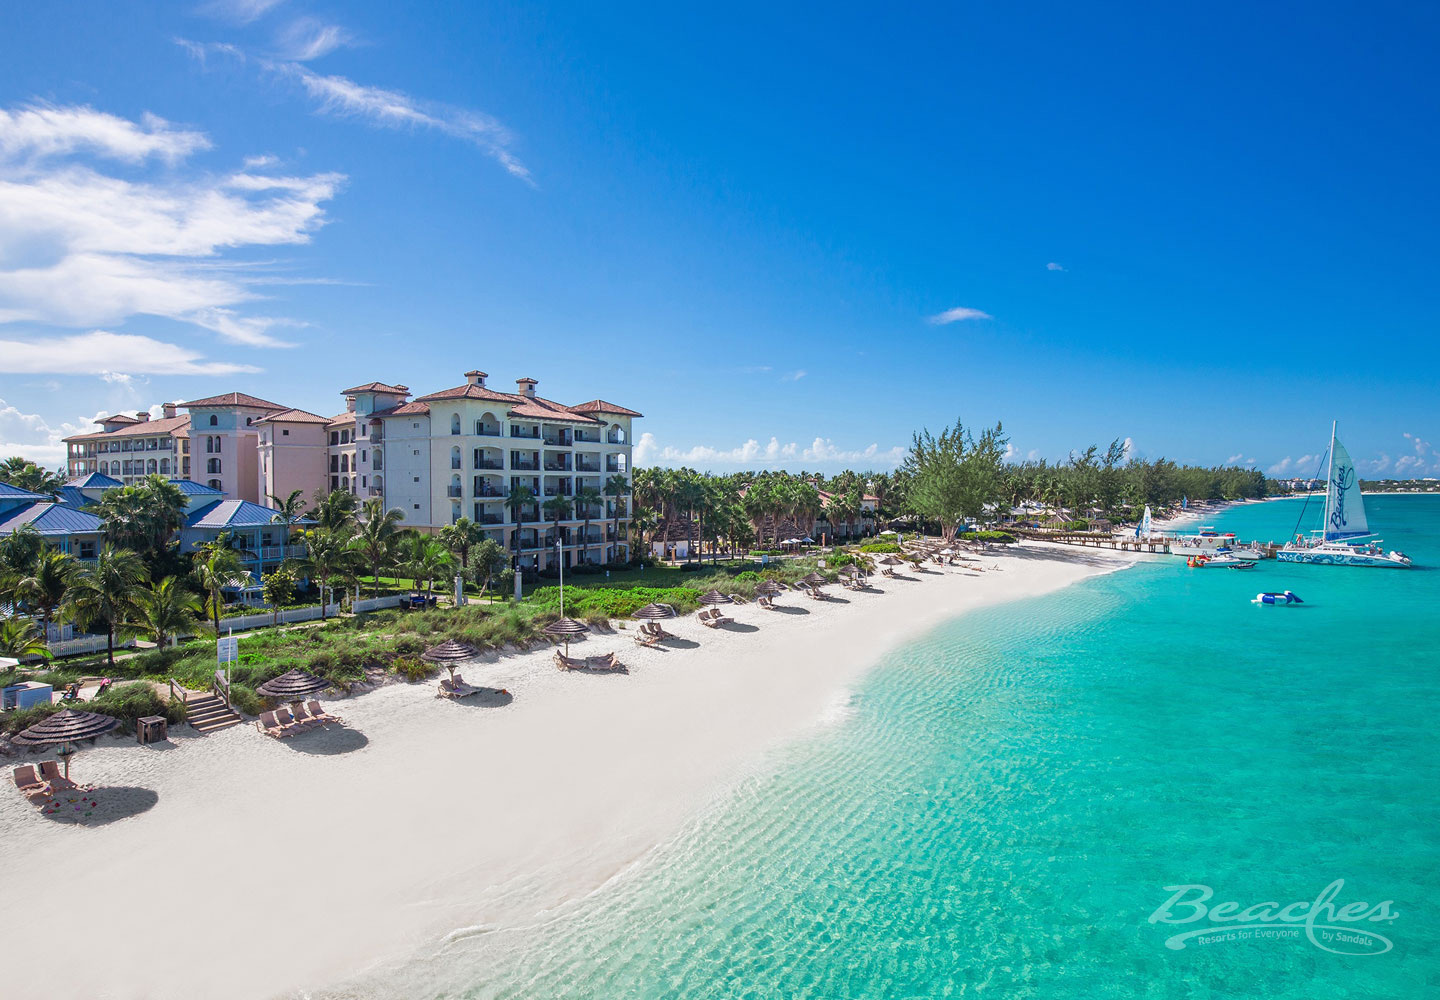 Travel Agency All-Inclusive Resort Beaches Turks and Caicos 152